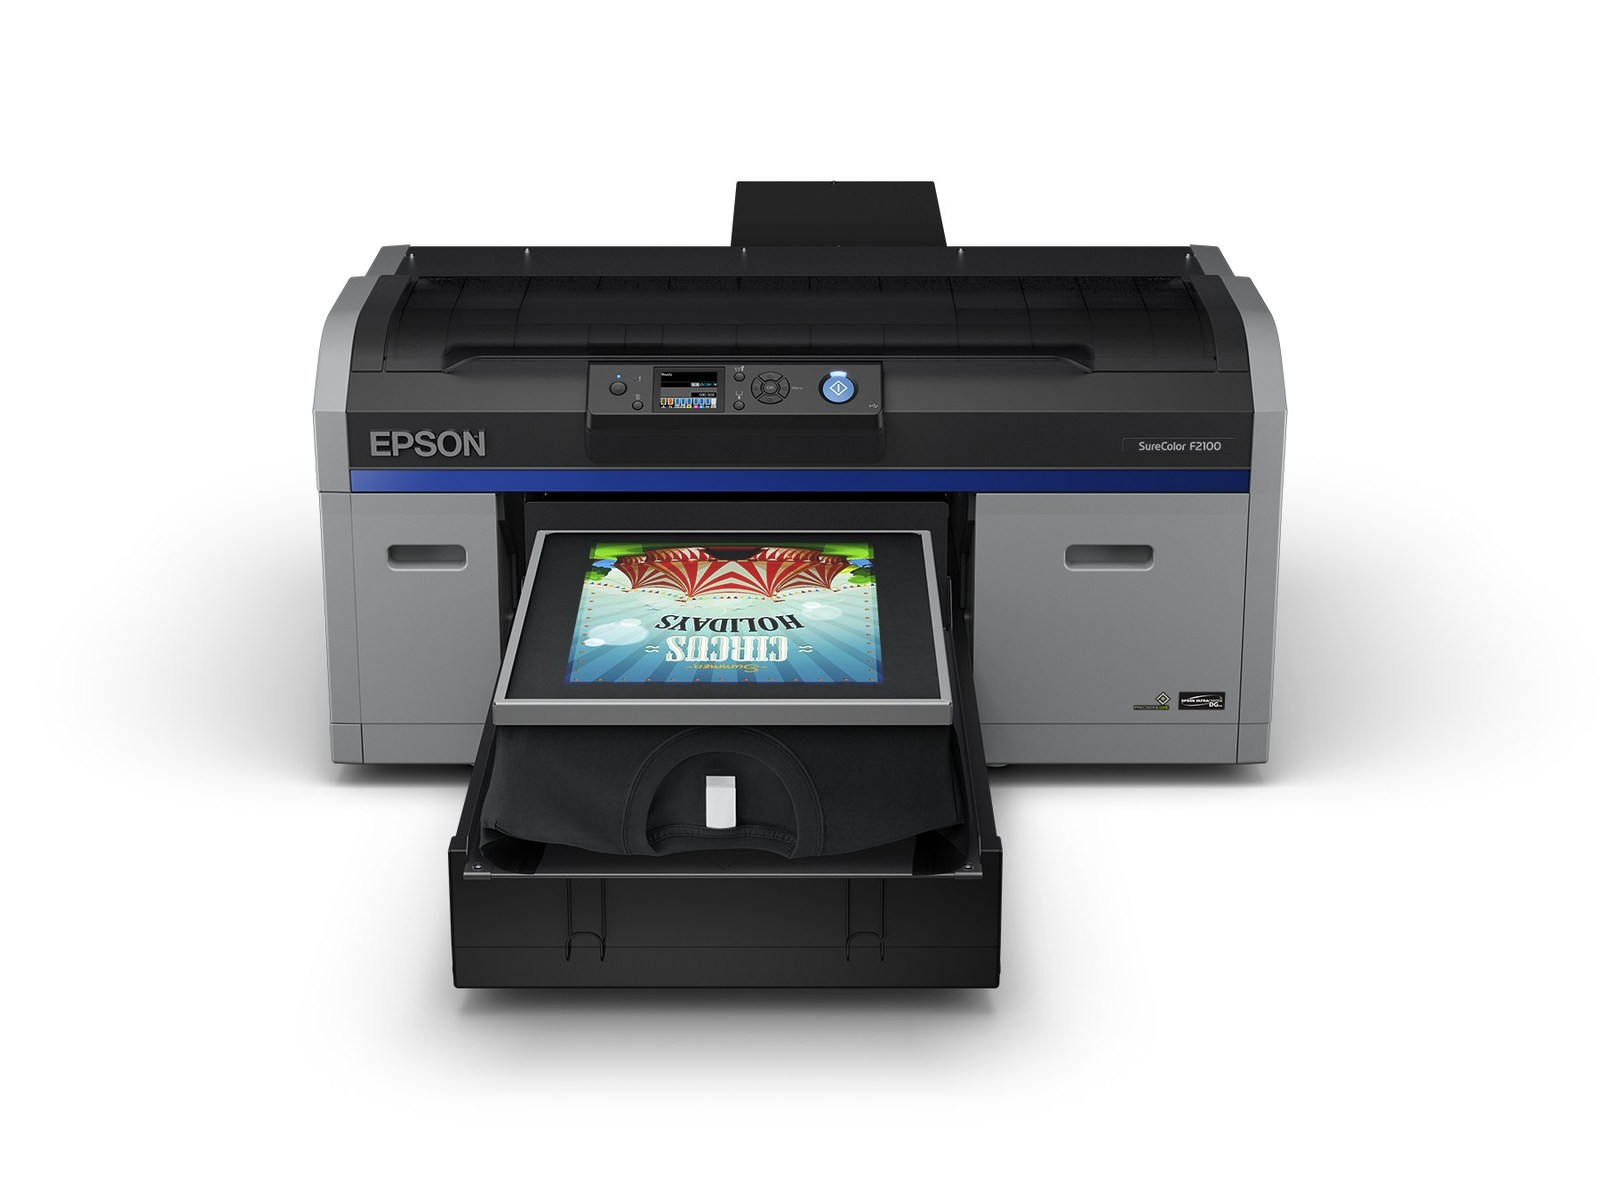 ce7ca0c1d The SureColor F2100 offers high-performance, reliable direct-to-garment  printing. Successor to the renowned SureColor F2000, the new SureColor  F2100 offers ...